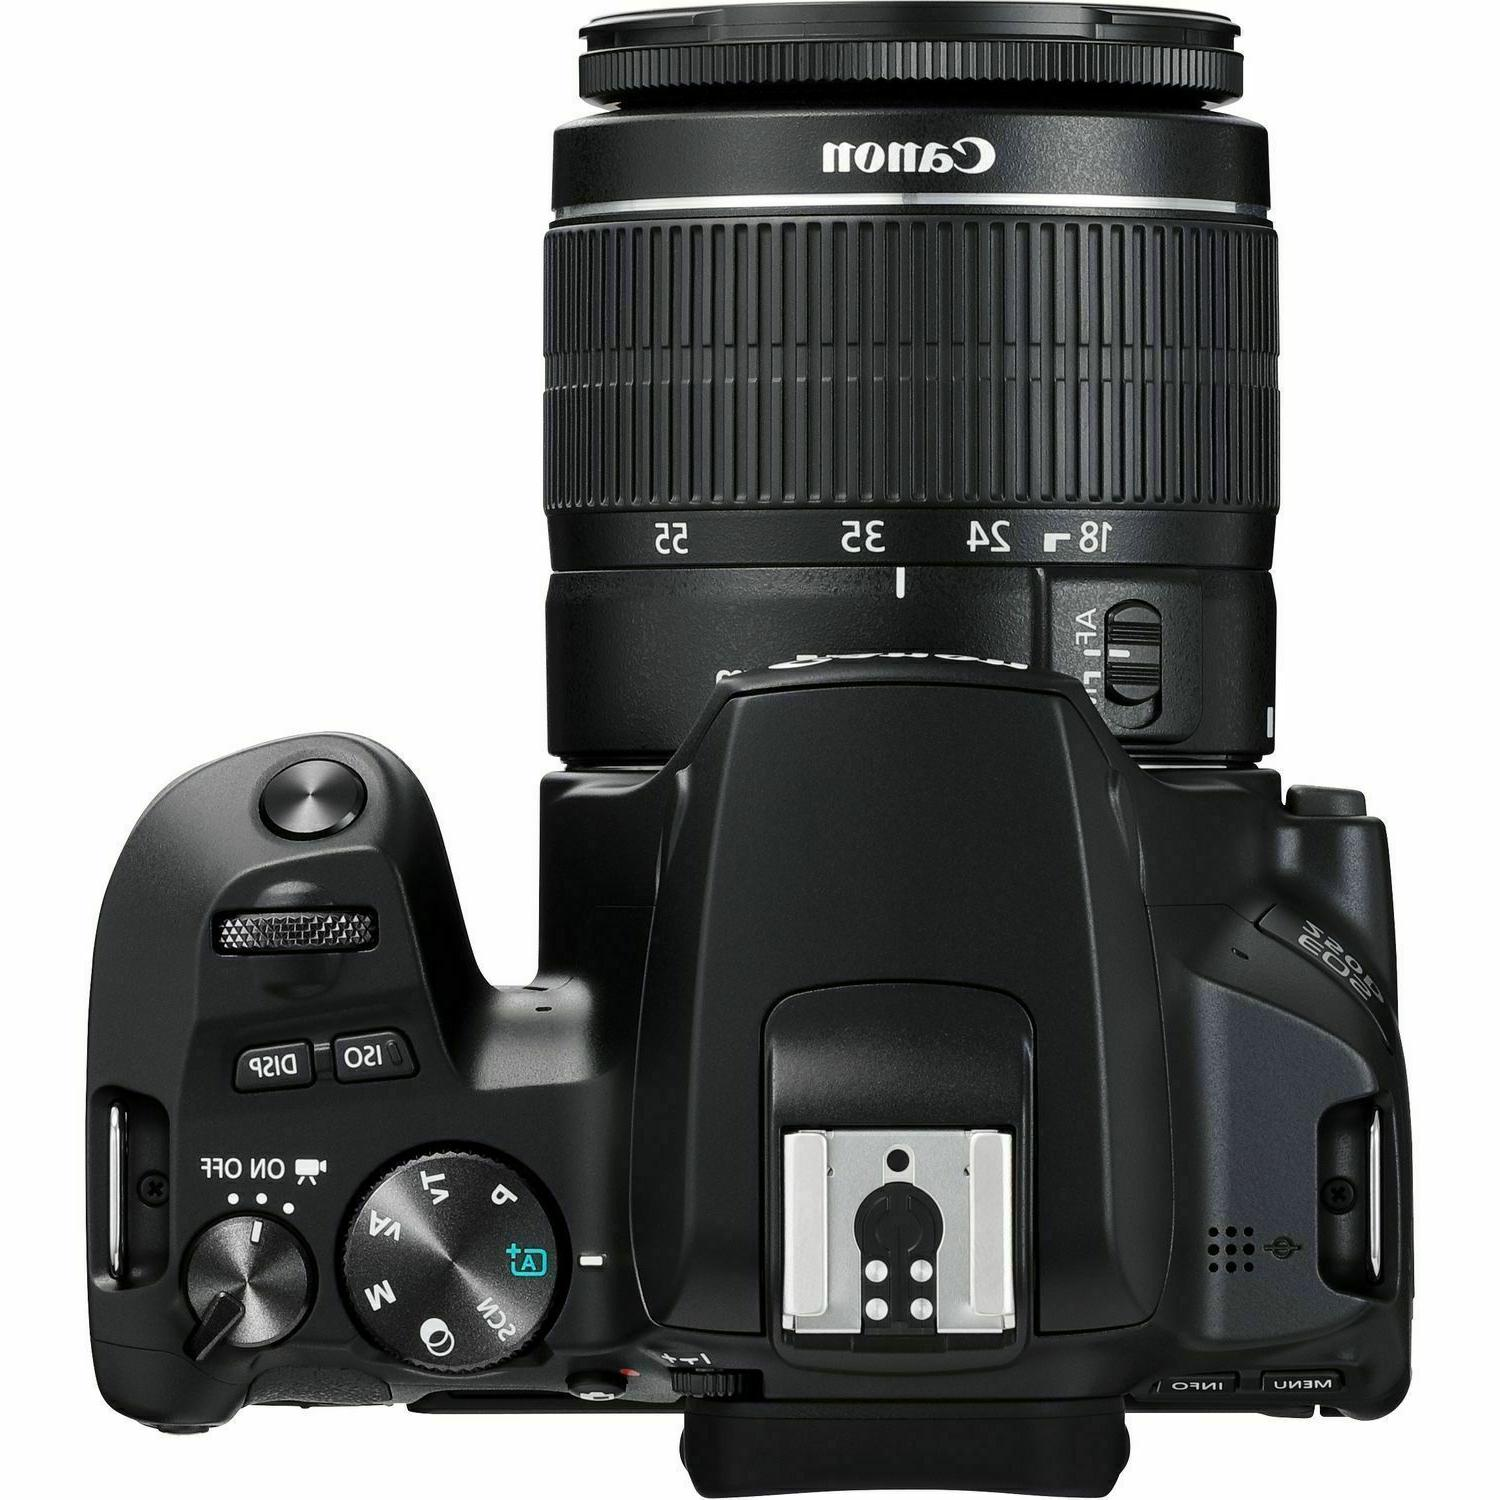 Canon 250D/Rebel SL3 DSLR with f/4-5.6